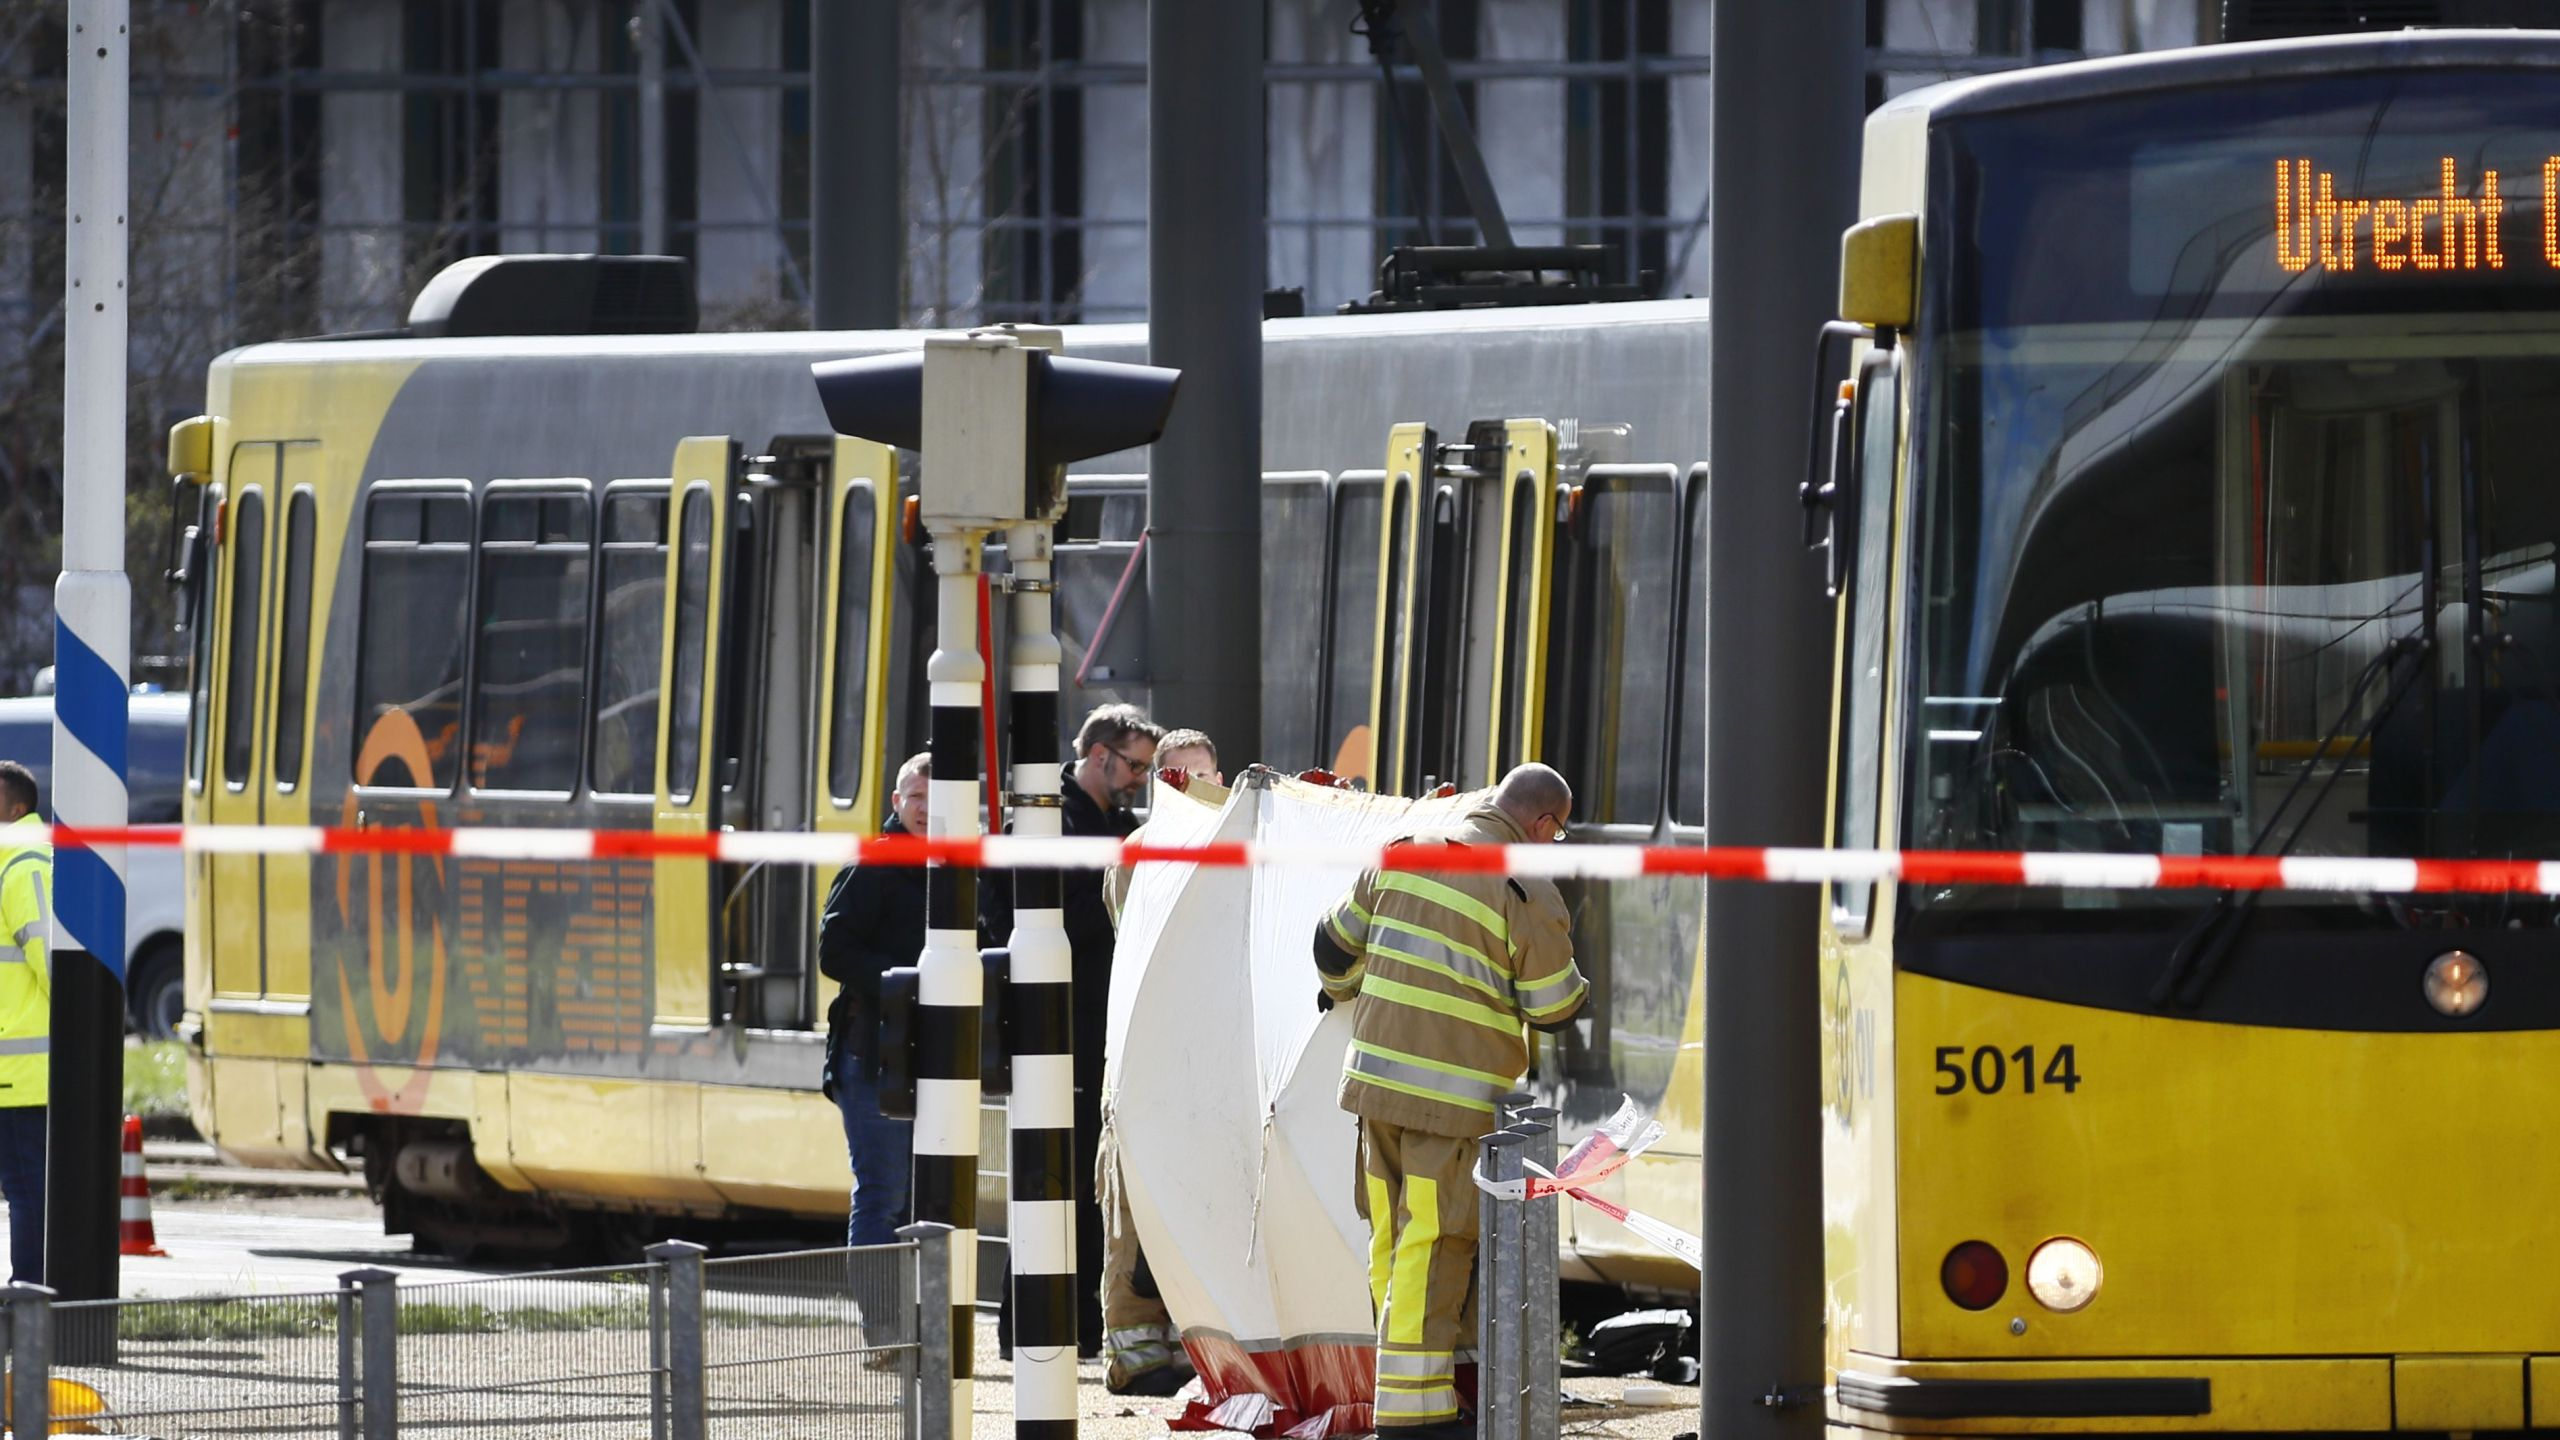 Police forces and emergency services stand at the 24 Oktoberplace in Utrecht, on March 18, 2019 where a shooting took place. (Credit: ROBIN VAN LONKHUIJSEN/AFP/Getty Images)